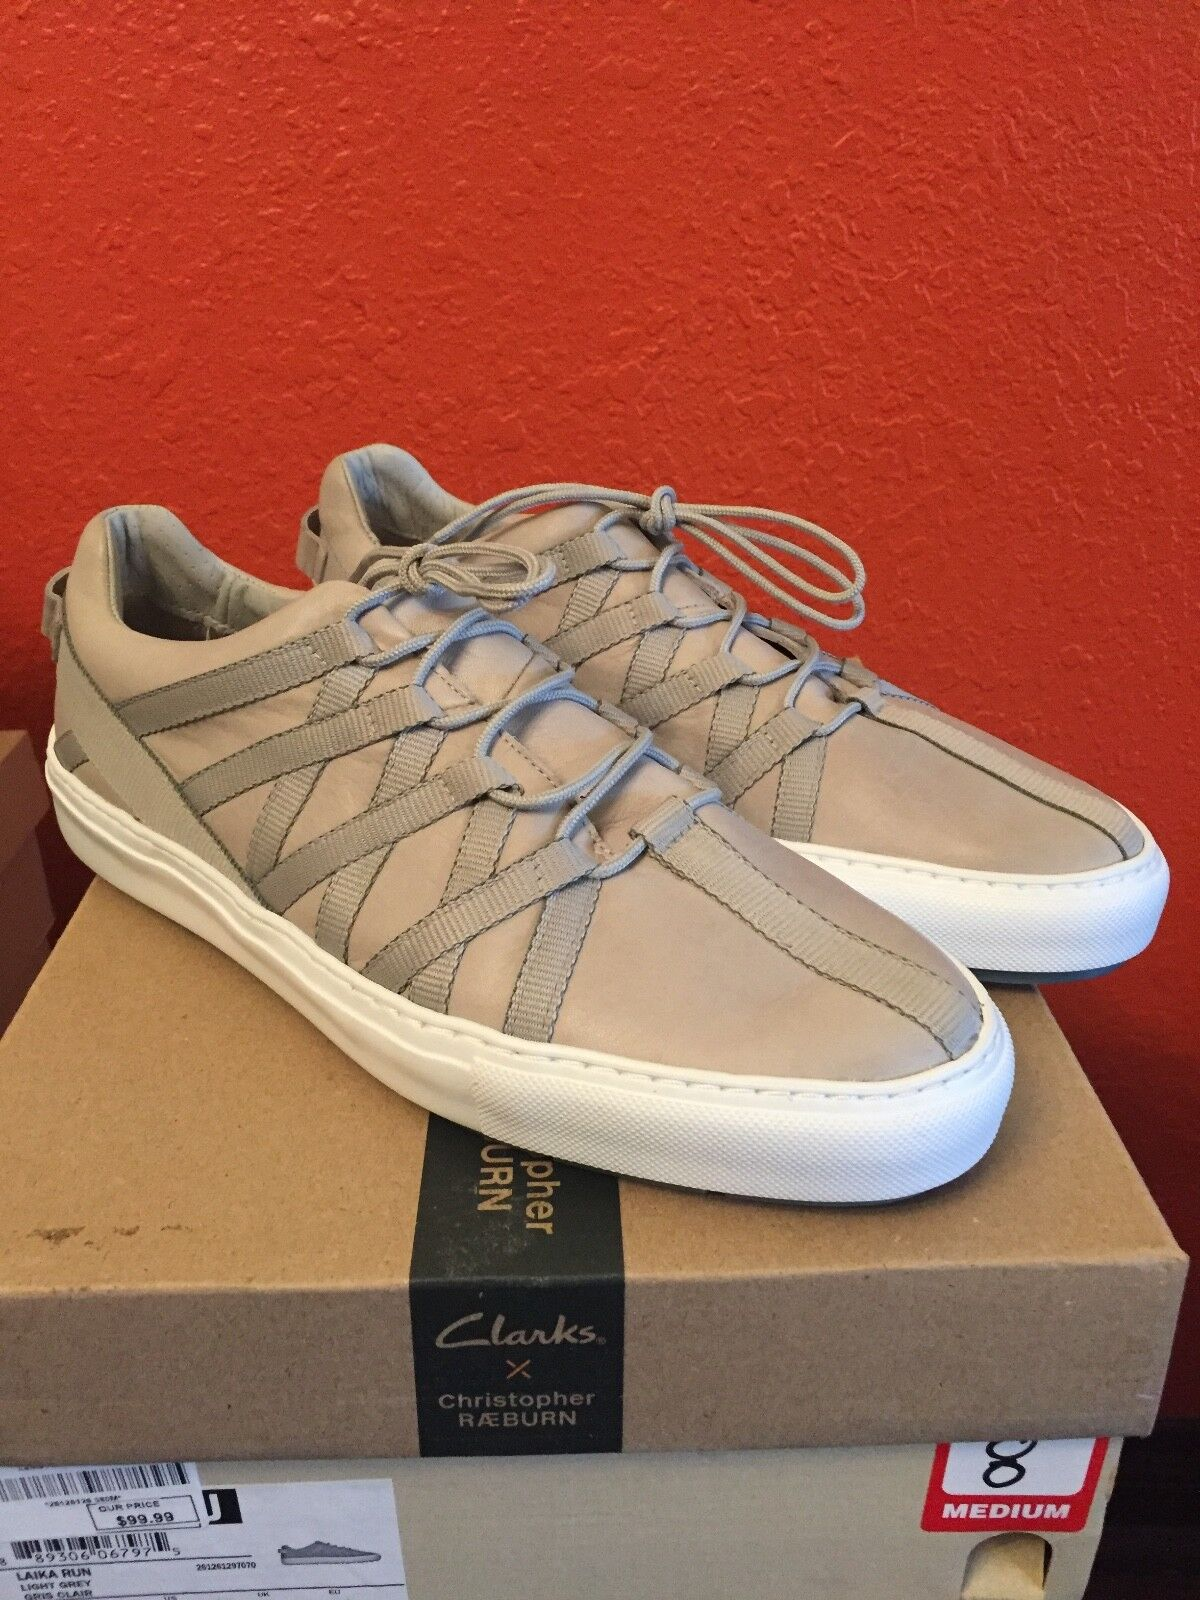 BRAND NEW Size 8M Mens Clarks X Christopher Raeburn Collaboration Shoes *Limited